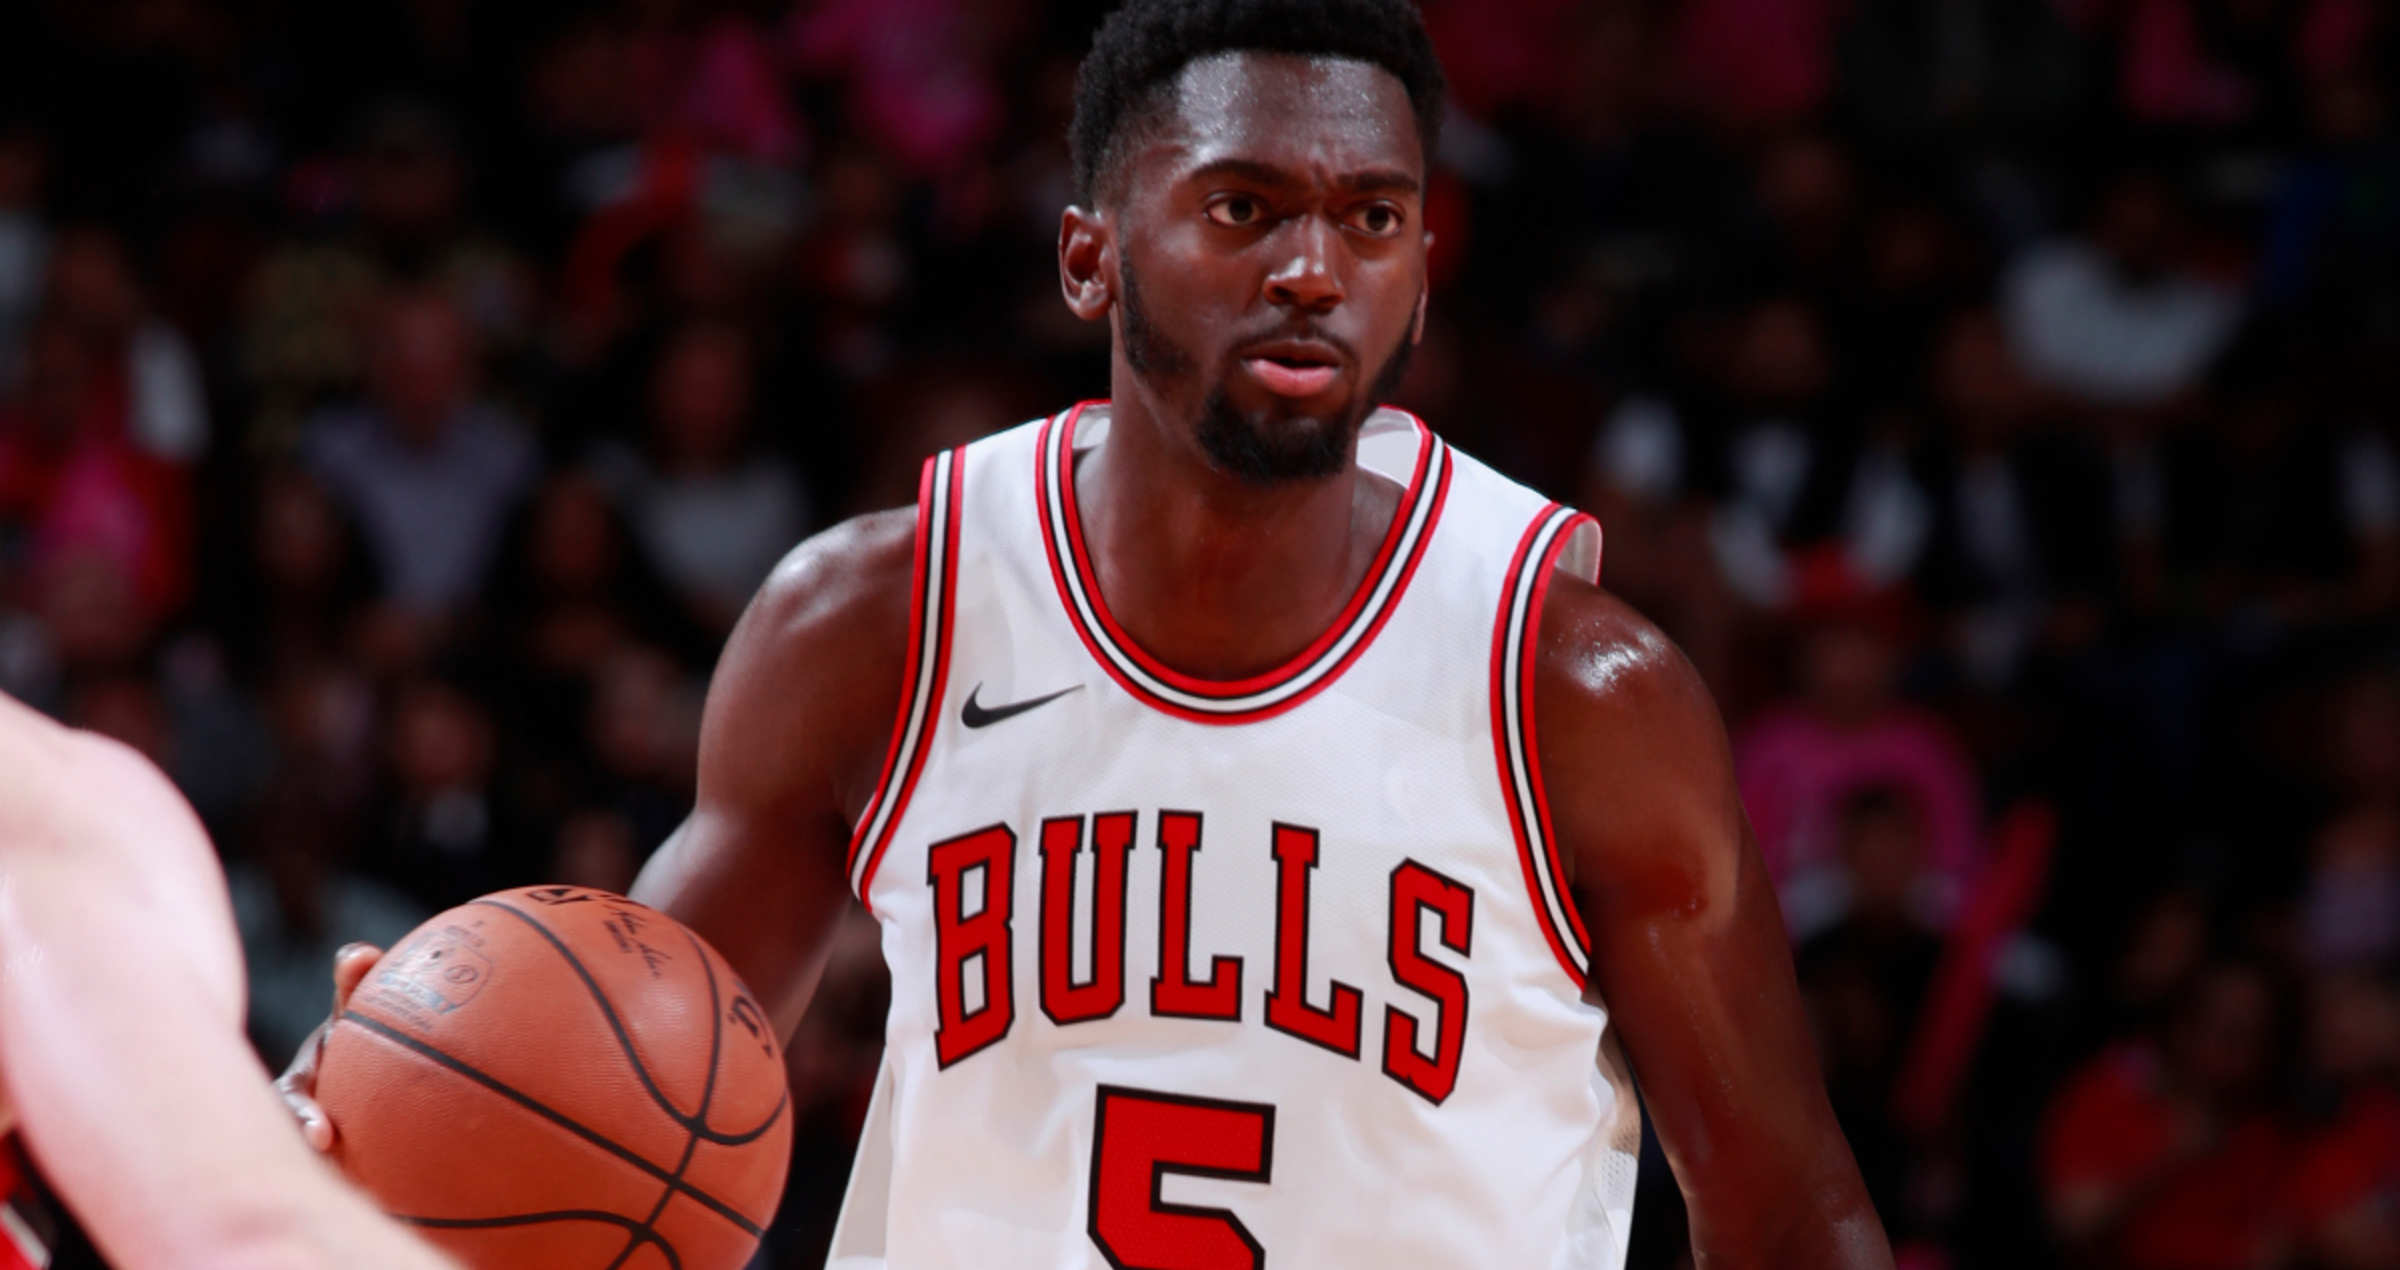 OCTOBER 13: Bobby Portis #5 of the Chicago Bulls handles the ball against the Toronto Raptors on October 13, 2017 at the United Center in Chicago, Illinois